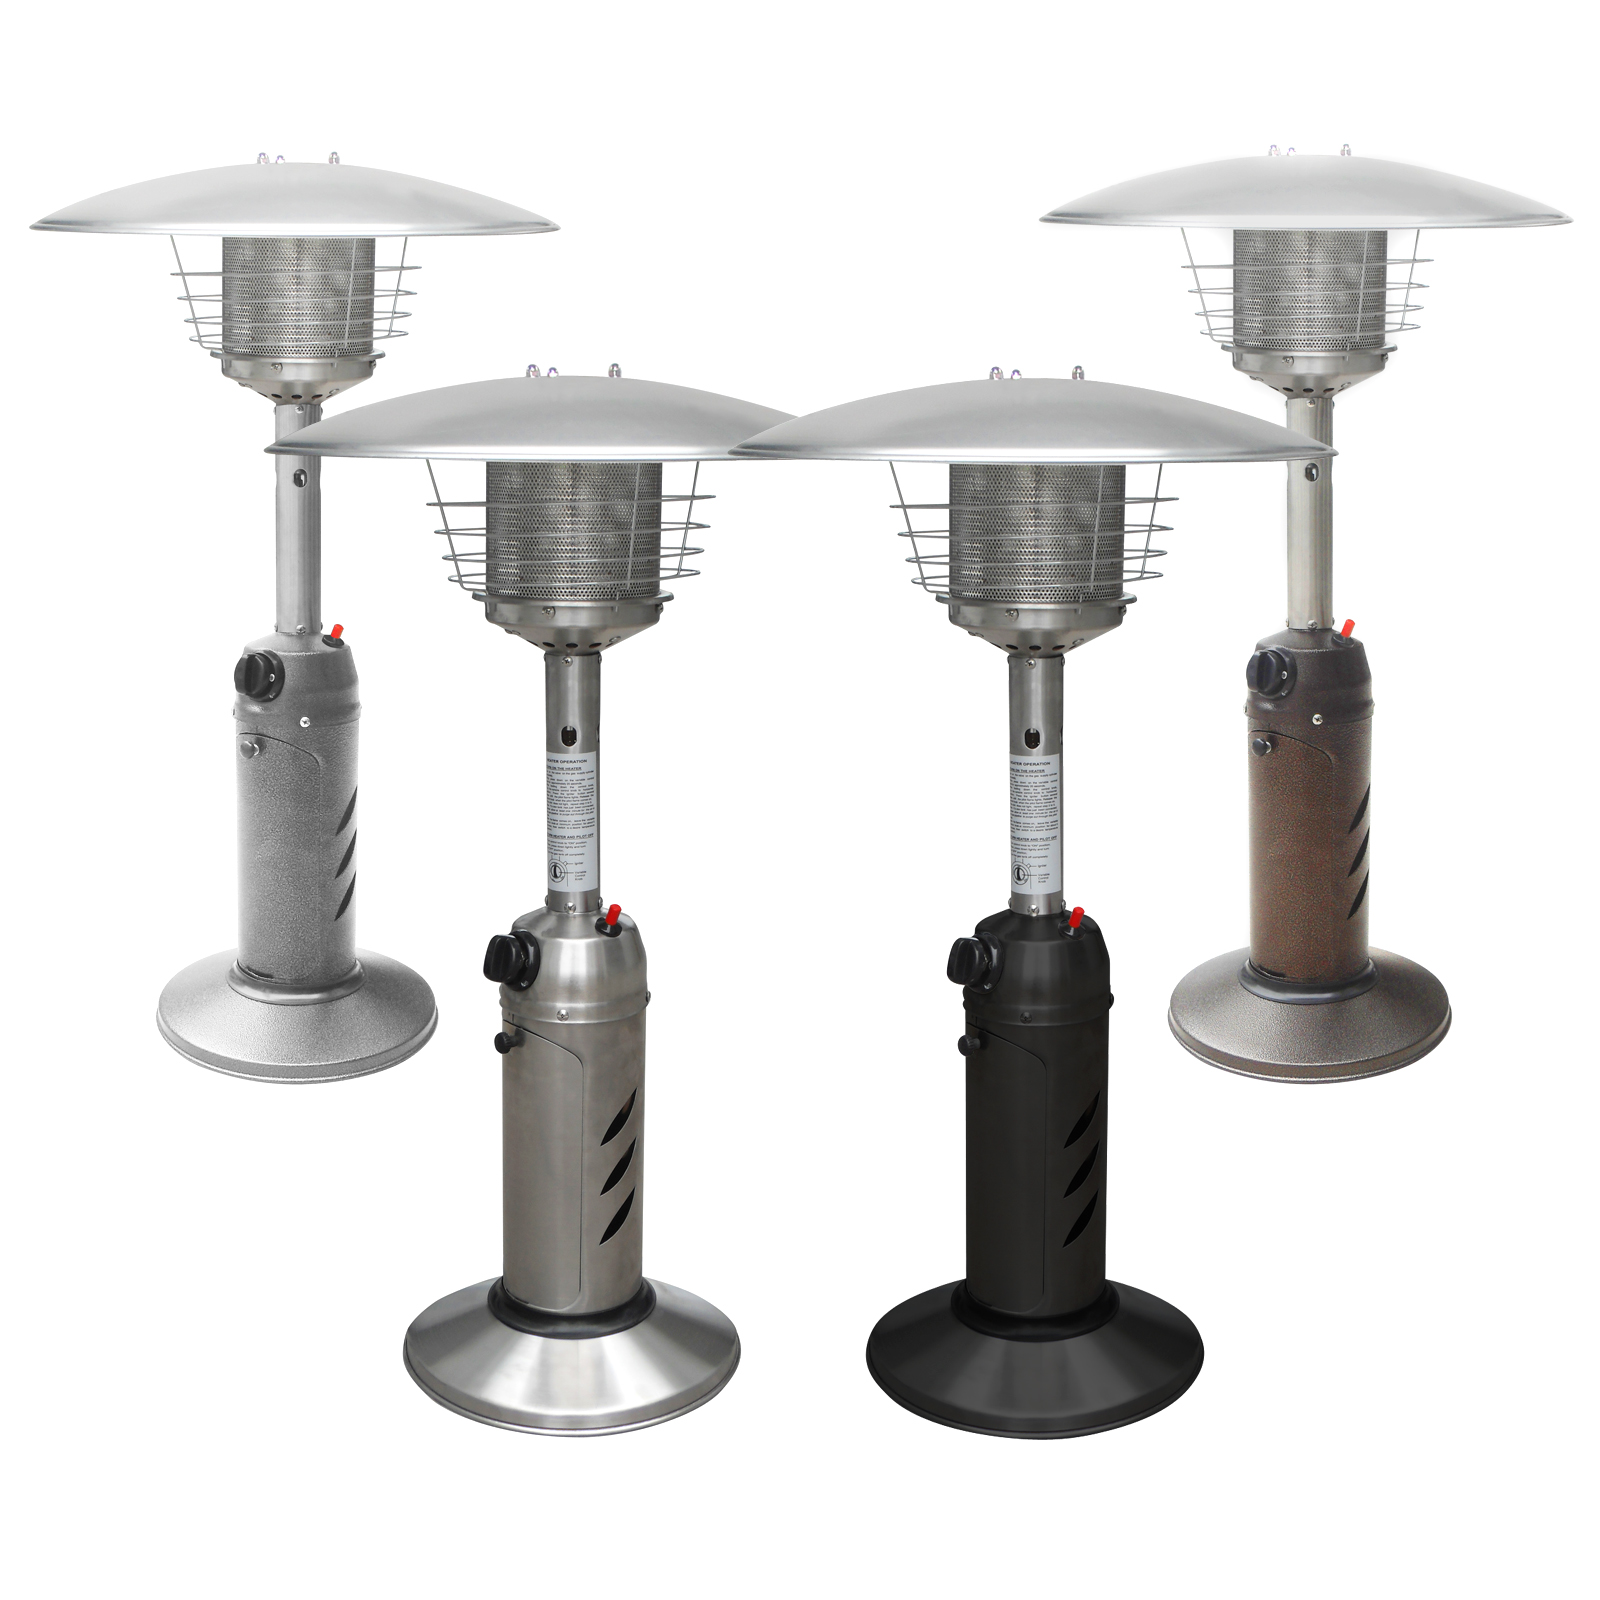 Tabletop Outdoor Patio Heater Garden Commercial